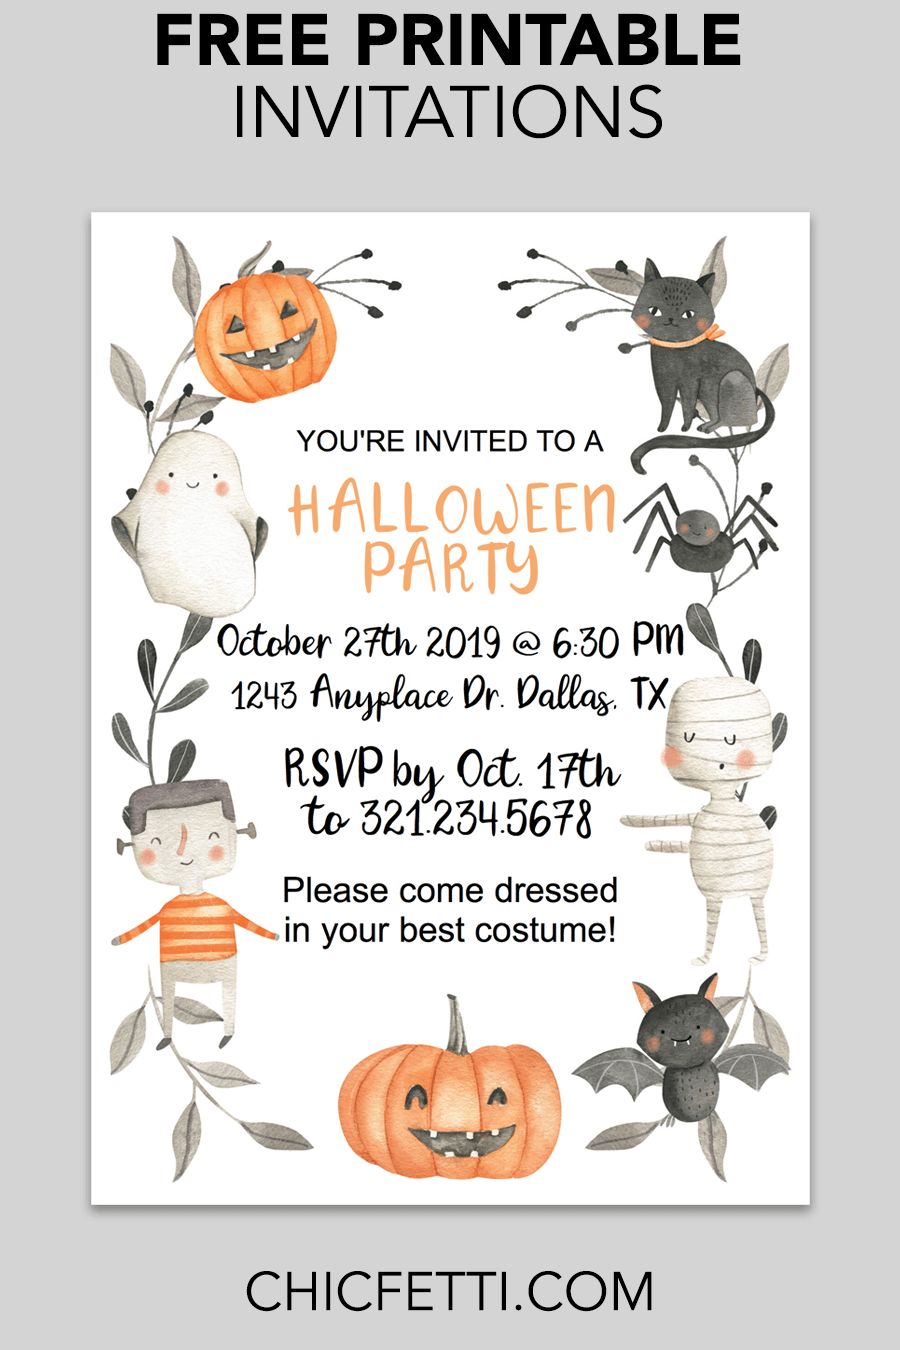 Free Printable Halloween Invitation Make Your Own Invitations With